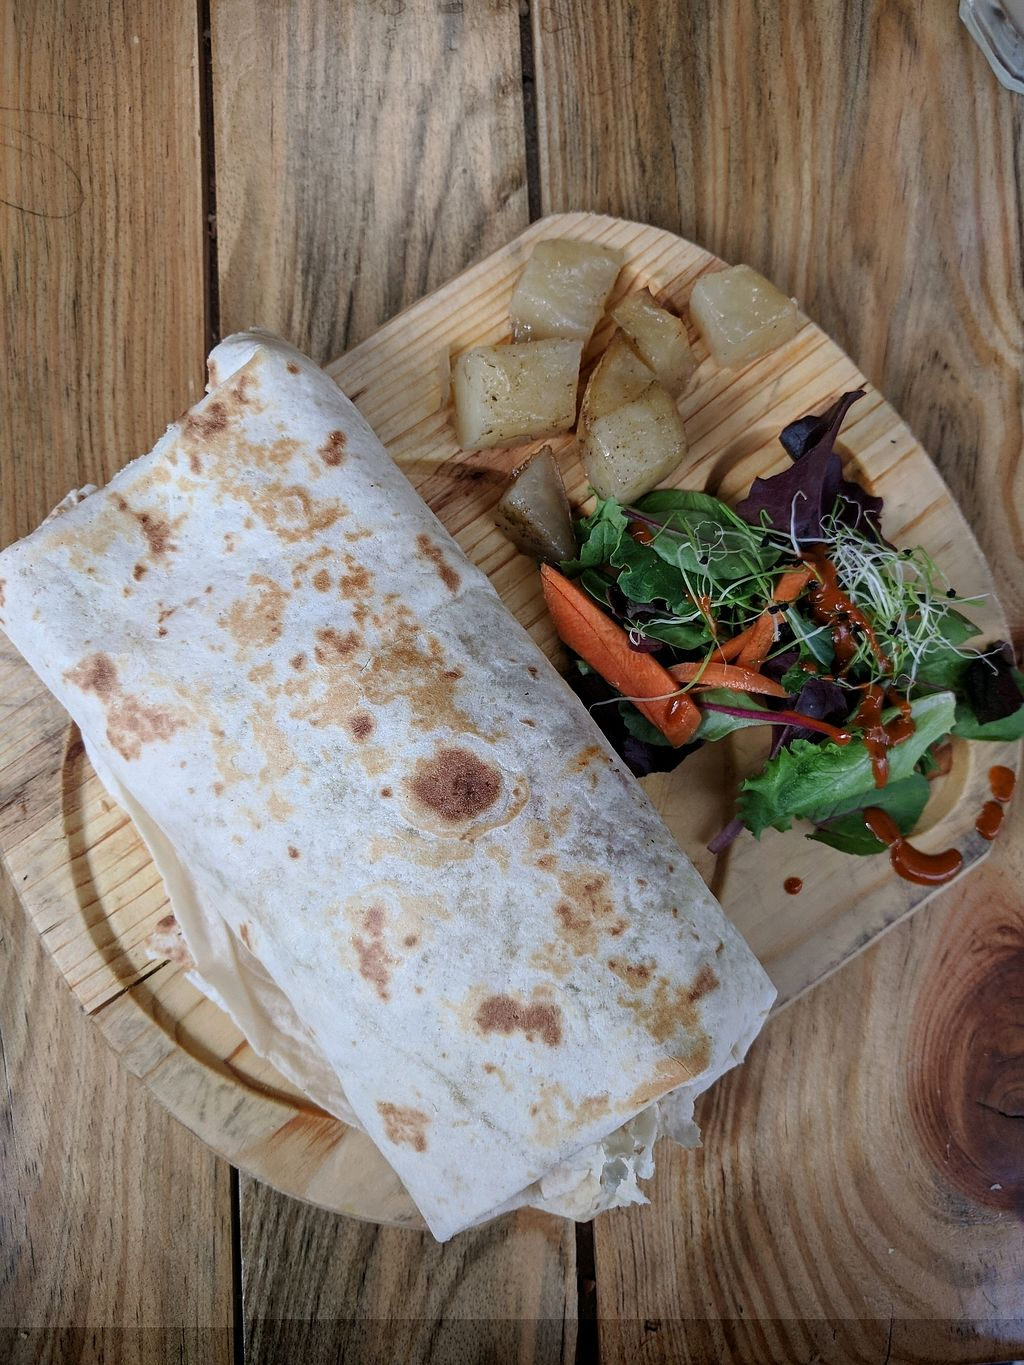 "Photo of Veganitessen  by <a href=""/members/profile/swissglobetrotter"">swissglobetrotter</a> <br/>burrito <br/> December 29, 2017  - <a href='/contact/abuse/image/17923/340478'>Report</a>"